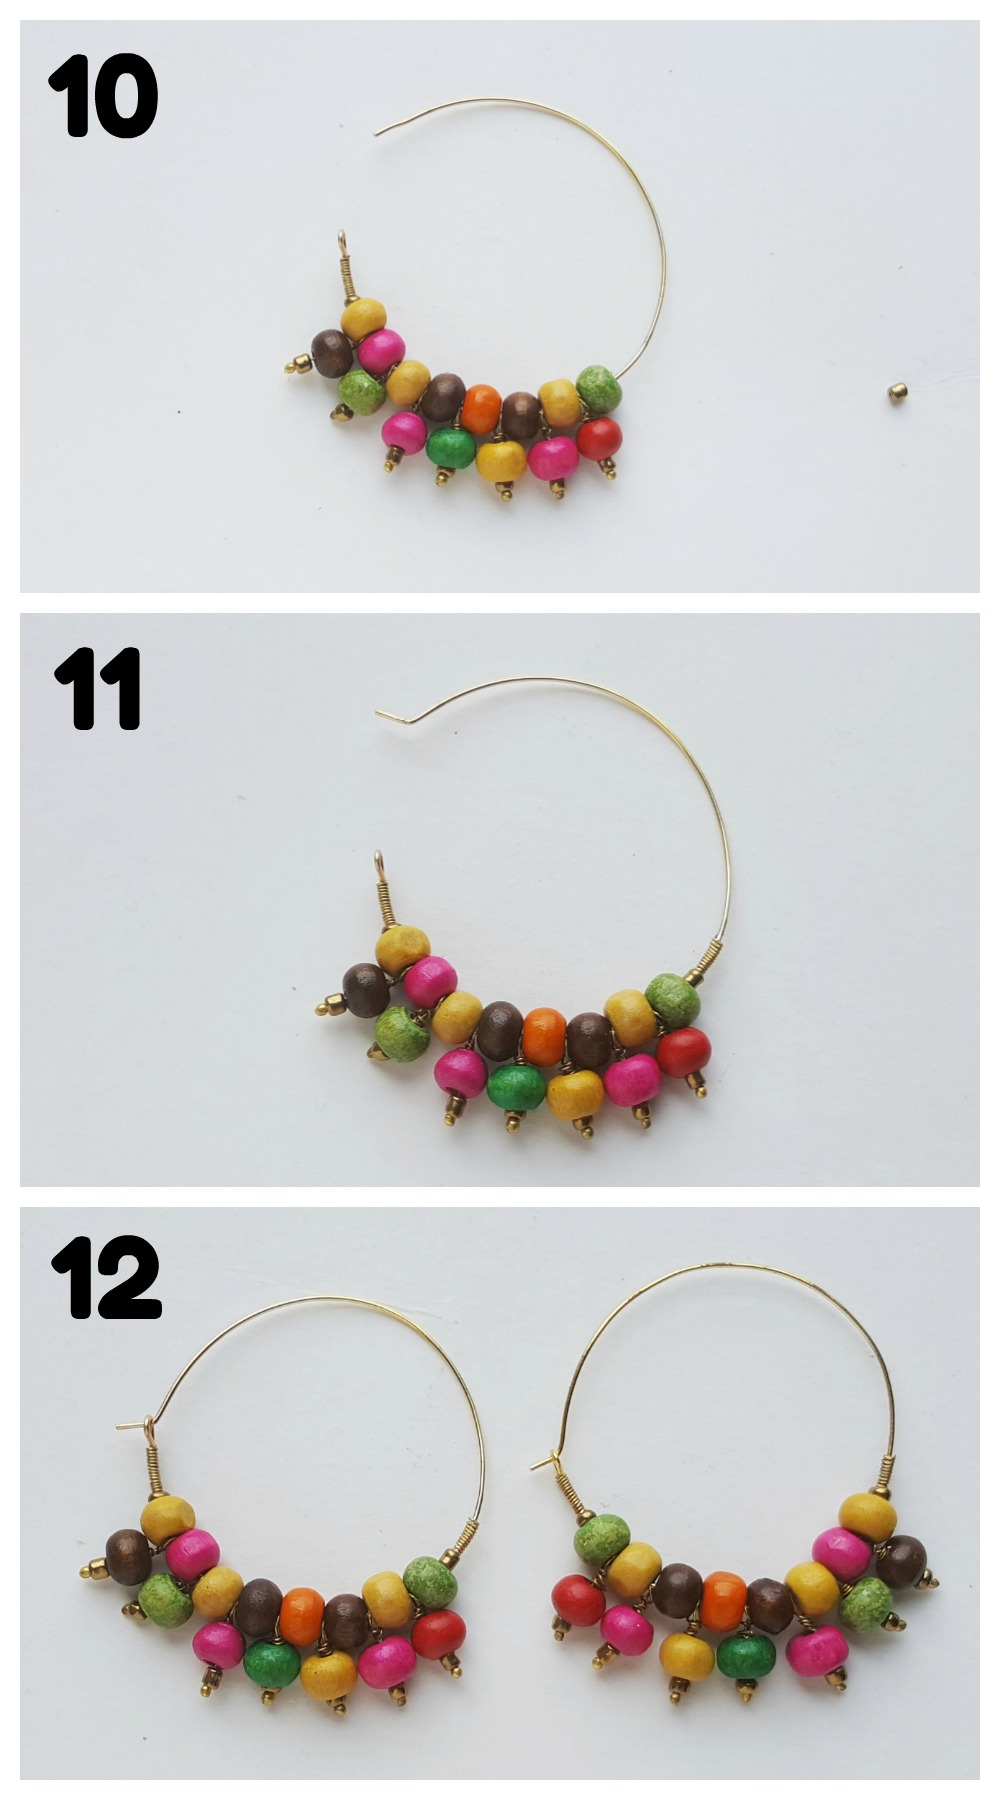 Beaded Hoop Earrings DIY Craft Steps 10-12